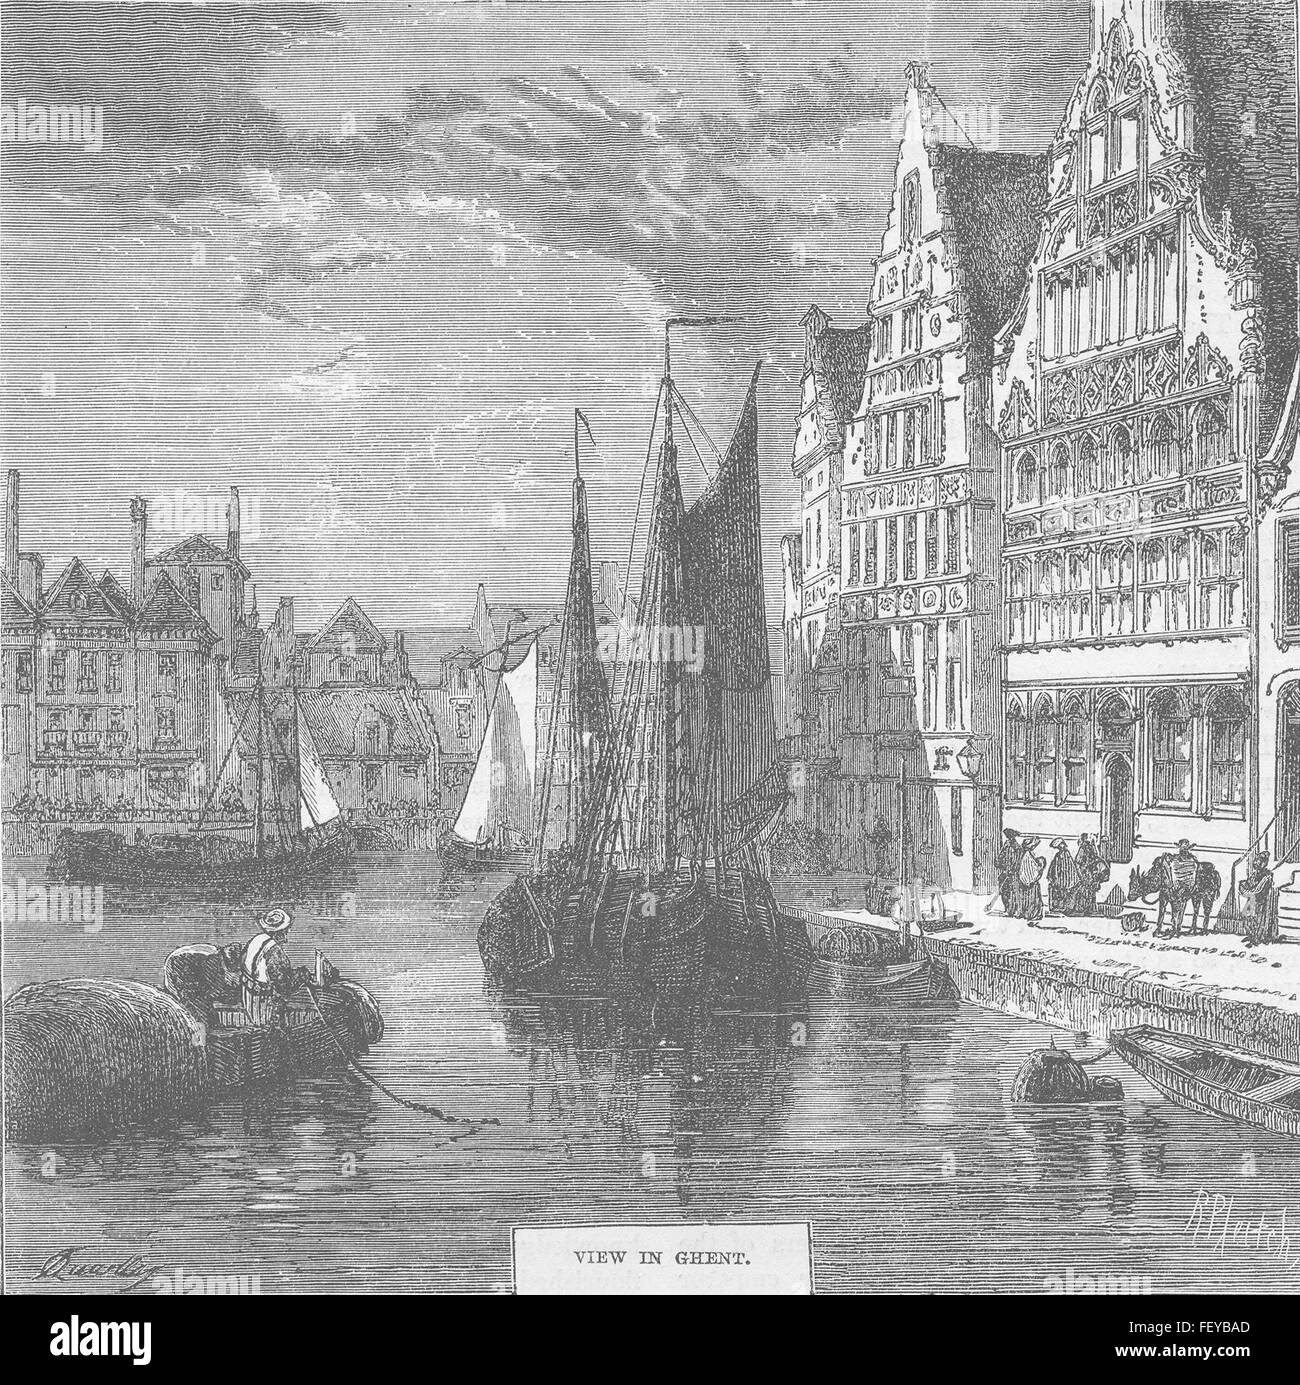 BELGIUM View in Ghent c1877. History of Protestantism, JA Wylie, published by Cassell & Co - Stock Image